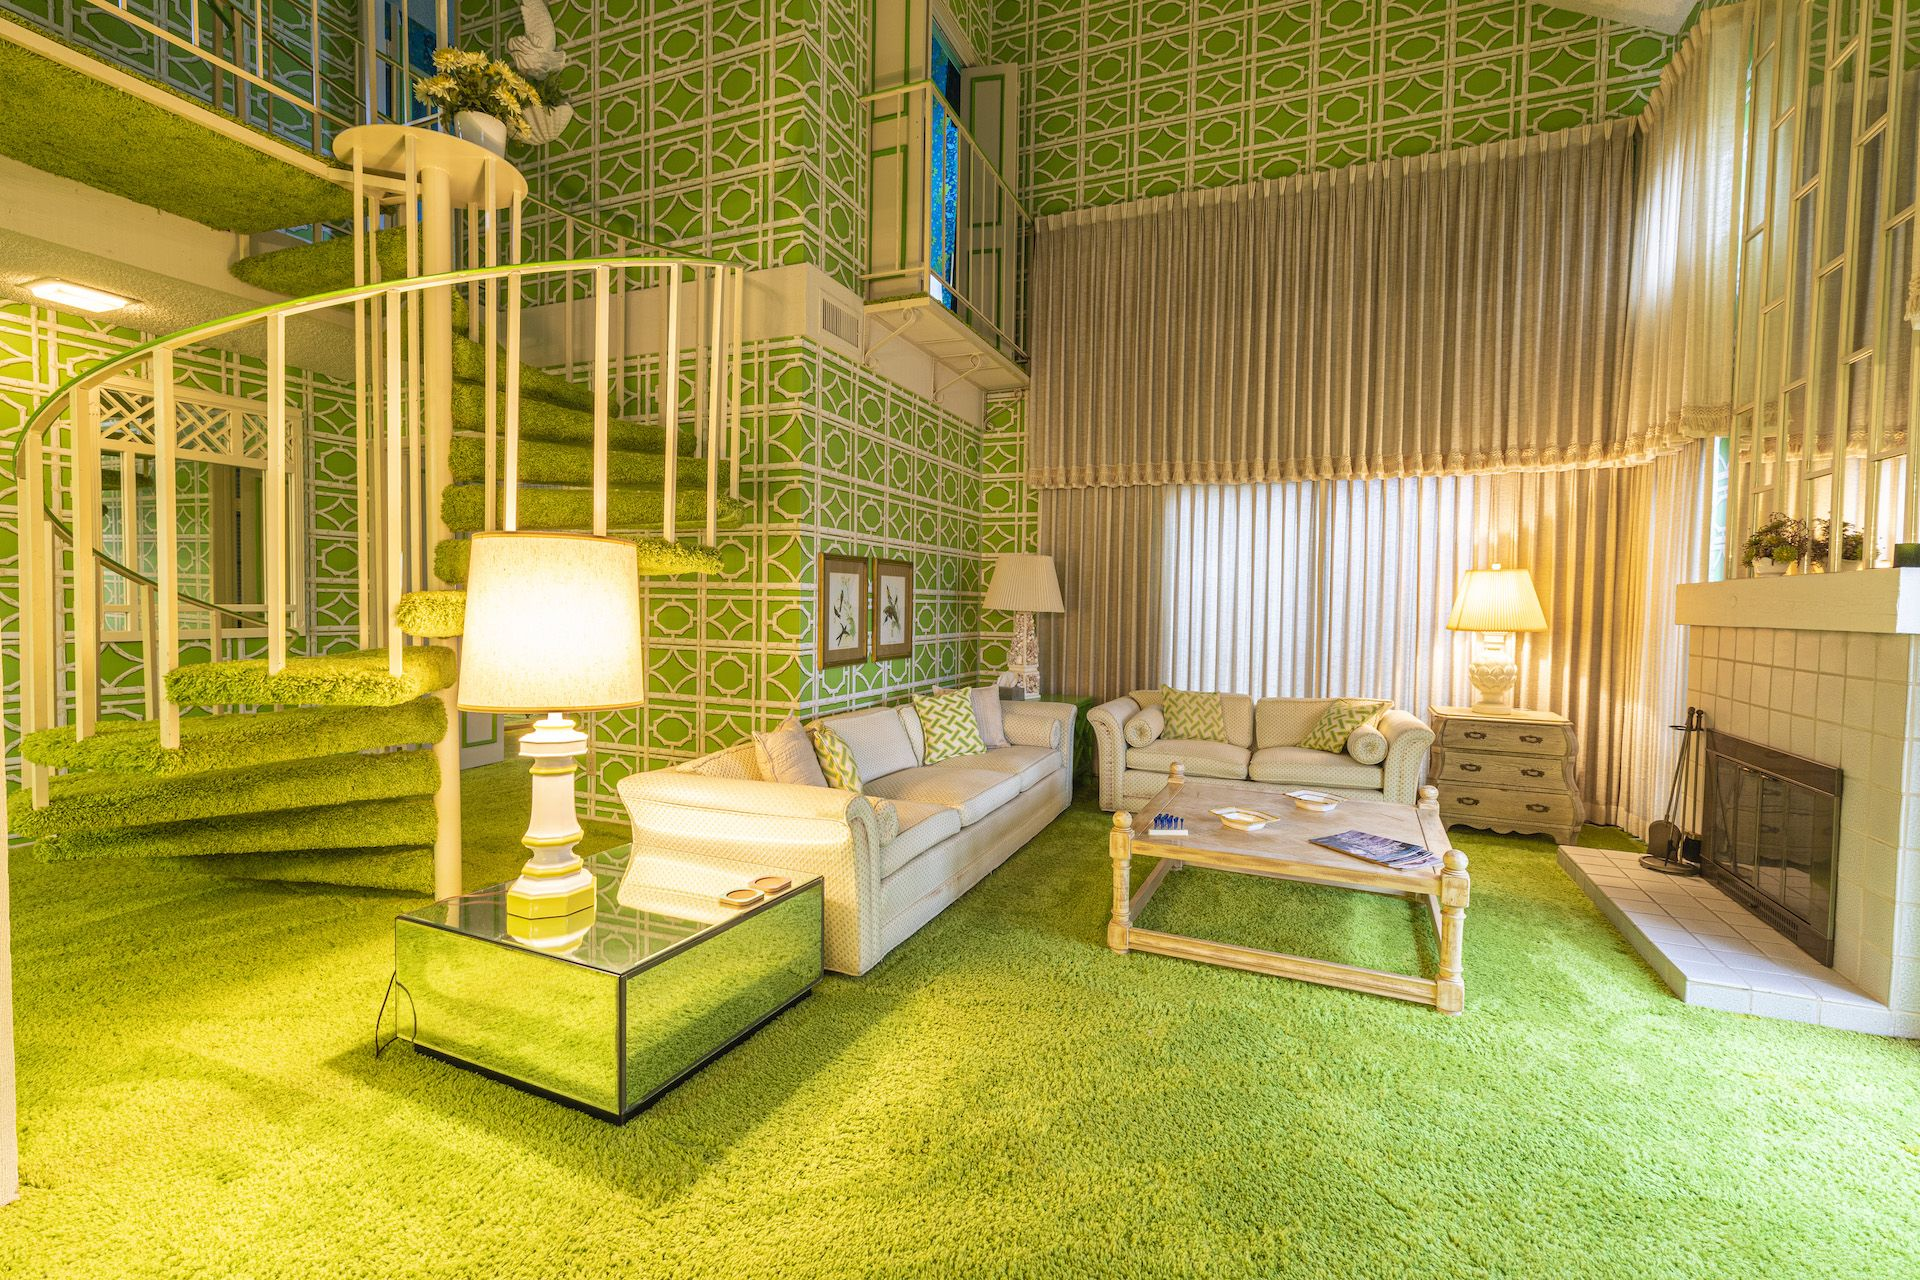 """This Groovy Green """"Time Capsule"""" Condo in California Is on the Market for $375,000"""